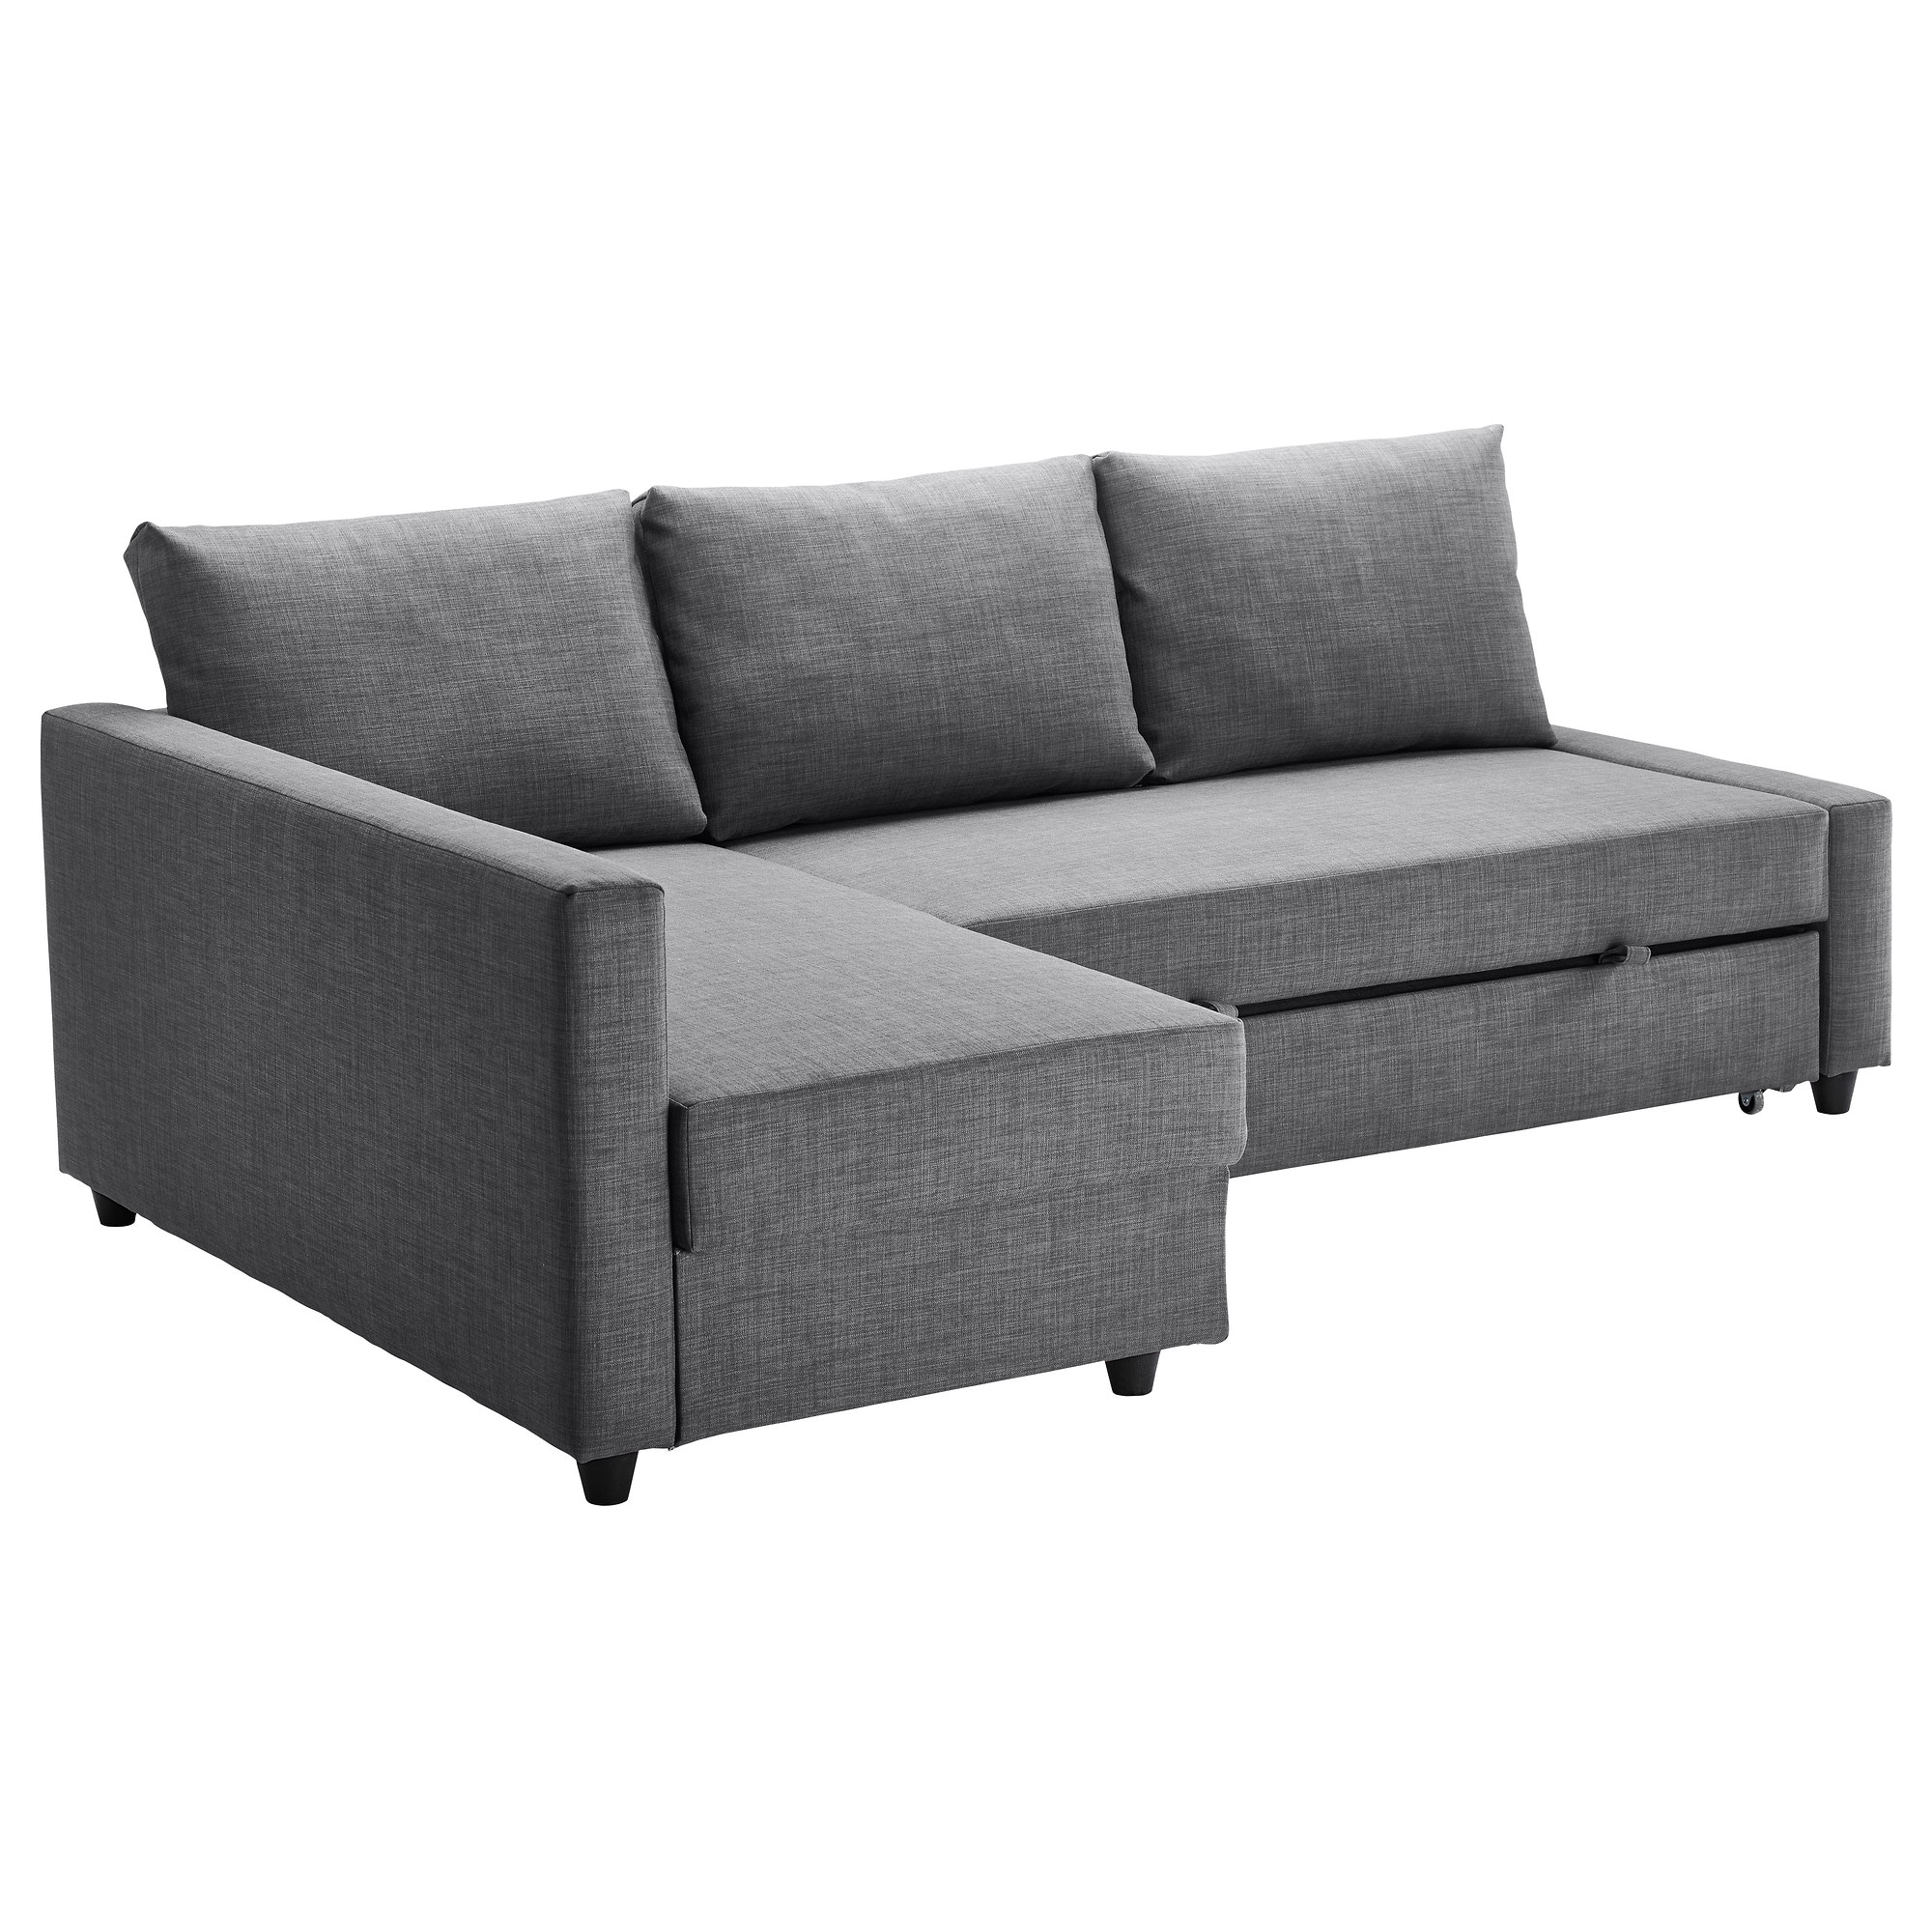 Friheten Corner Sofa Bed With Storage Skiftebo Dark Grey – Ikea Pertaining To Most Recently Released Sofa Bed Chairs (View 5 of 20)